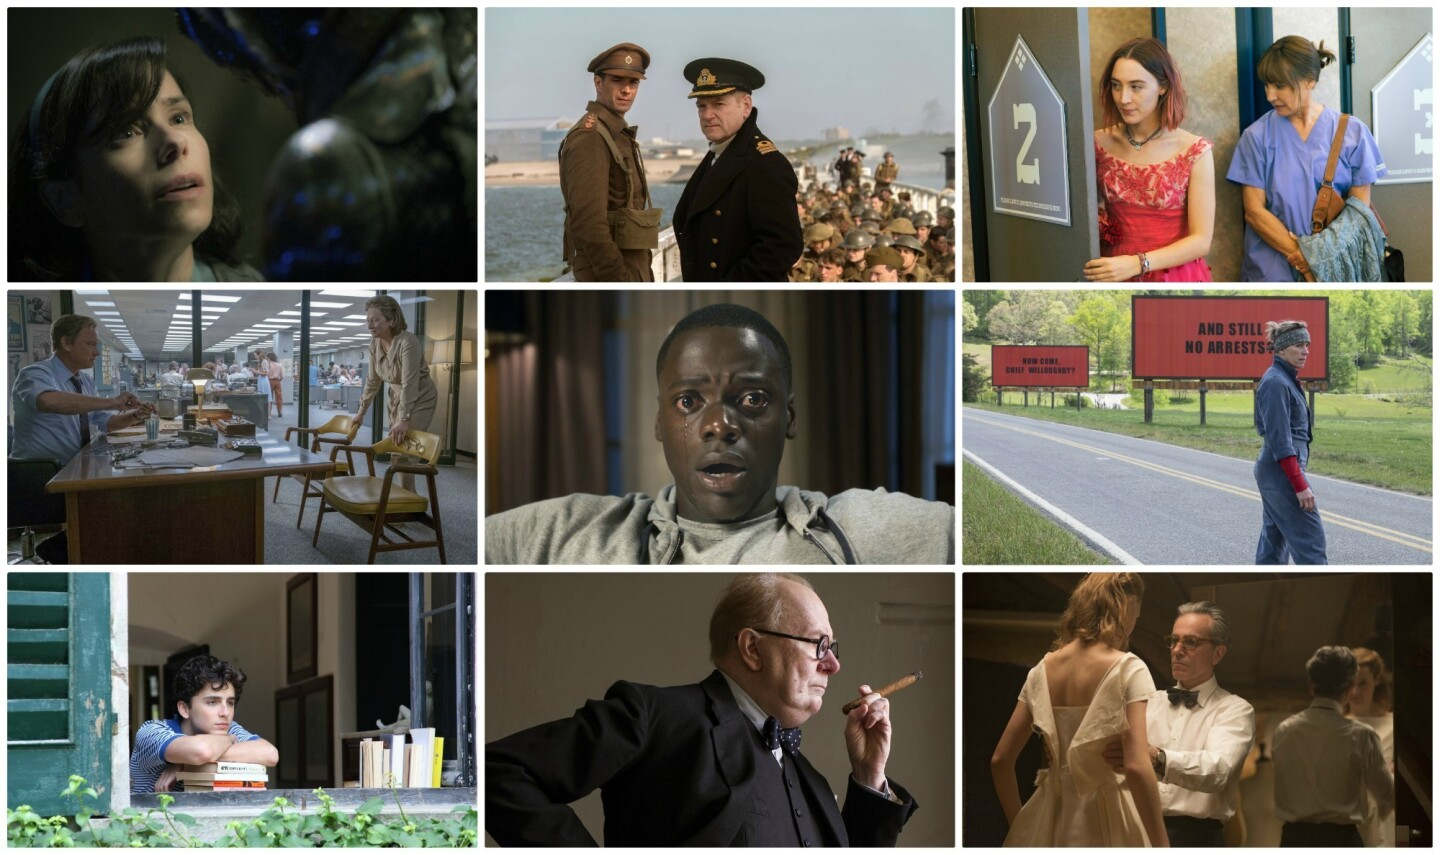 """A composite of the best motion picture nominees. from top left, """"The Shape of Water,"""" """"Dunkirk,"""" """"Lady Bird,"""" """"The Post,"""" """"Get Out,"""" """"Victoria & Abul,"""" """"Call Me by Your Name,"""" """"Darkest Hour"""" and """"Phantom Thread."""""""